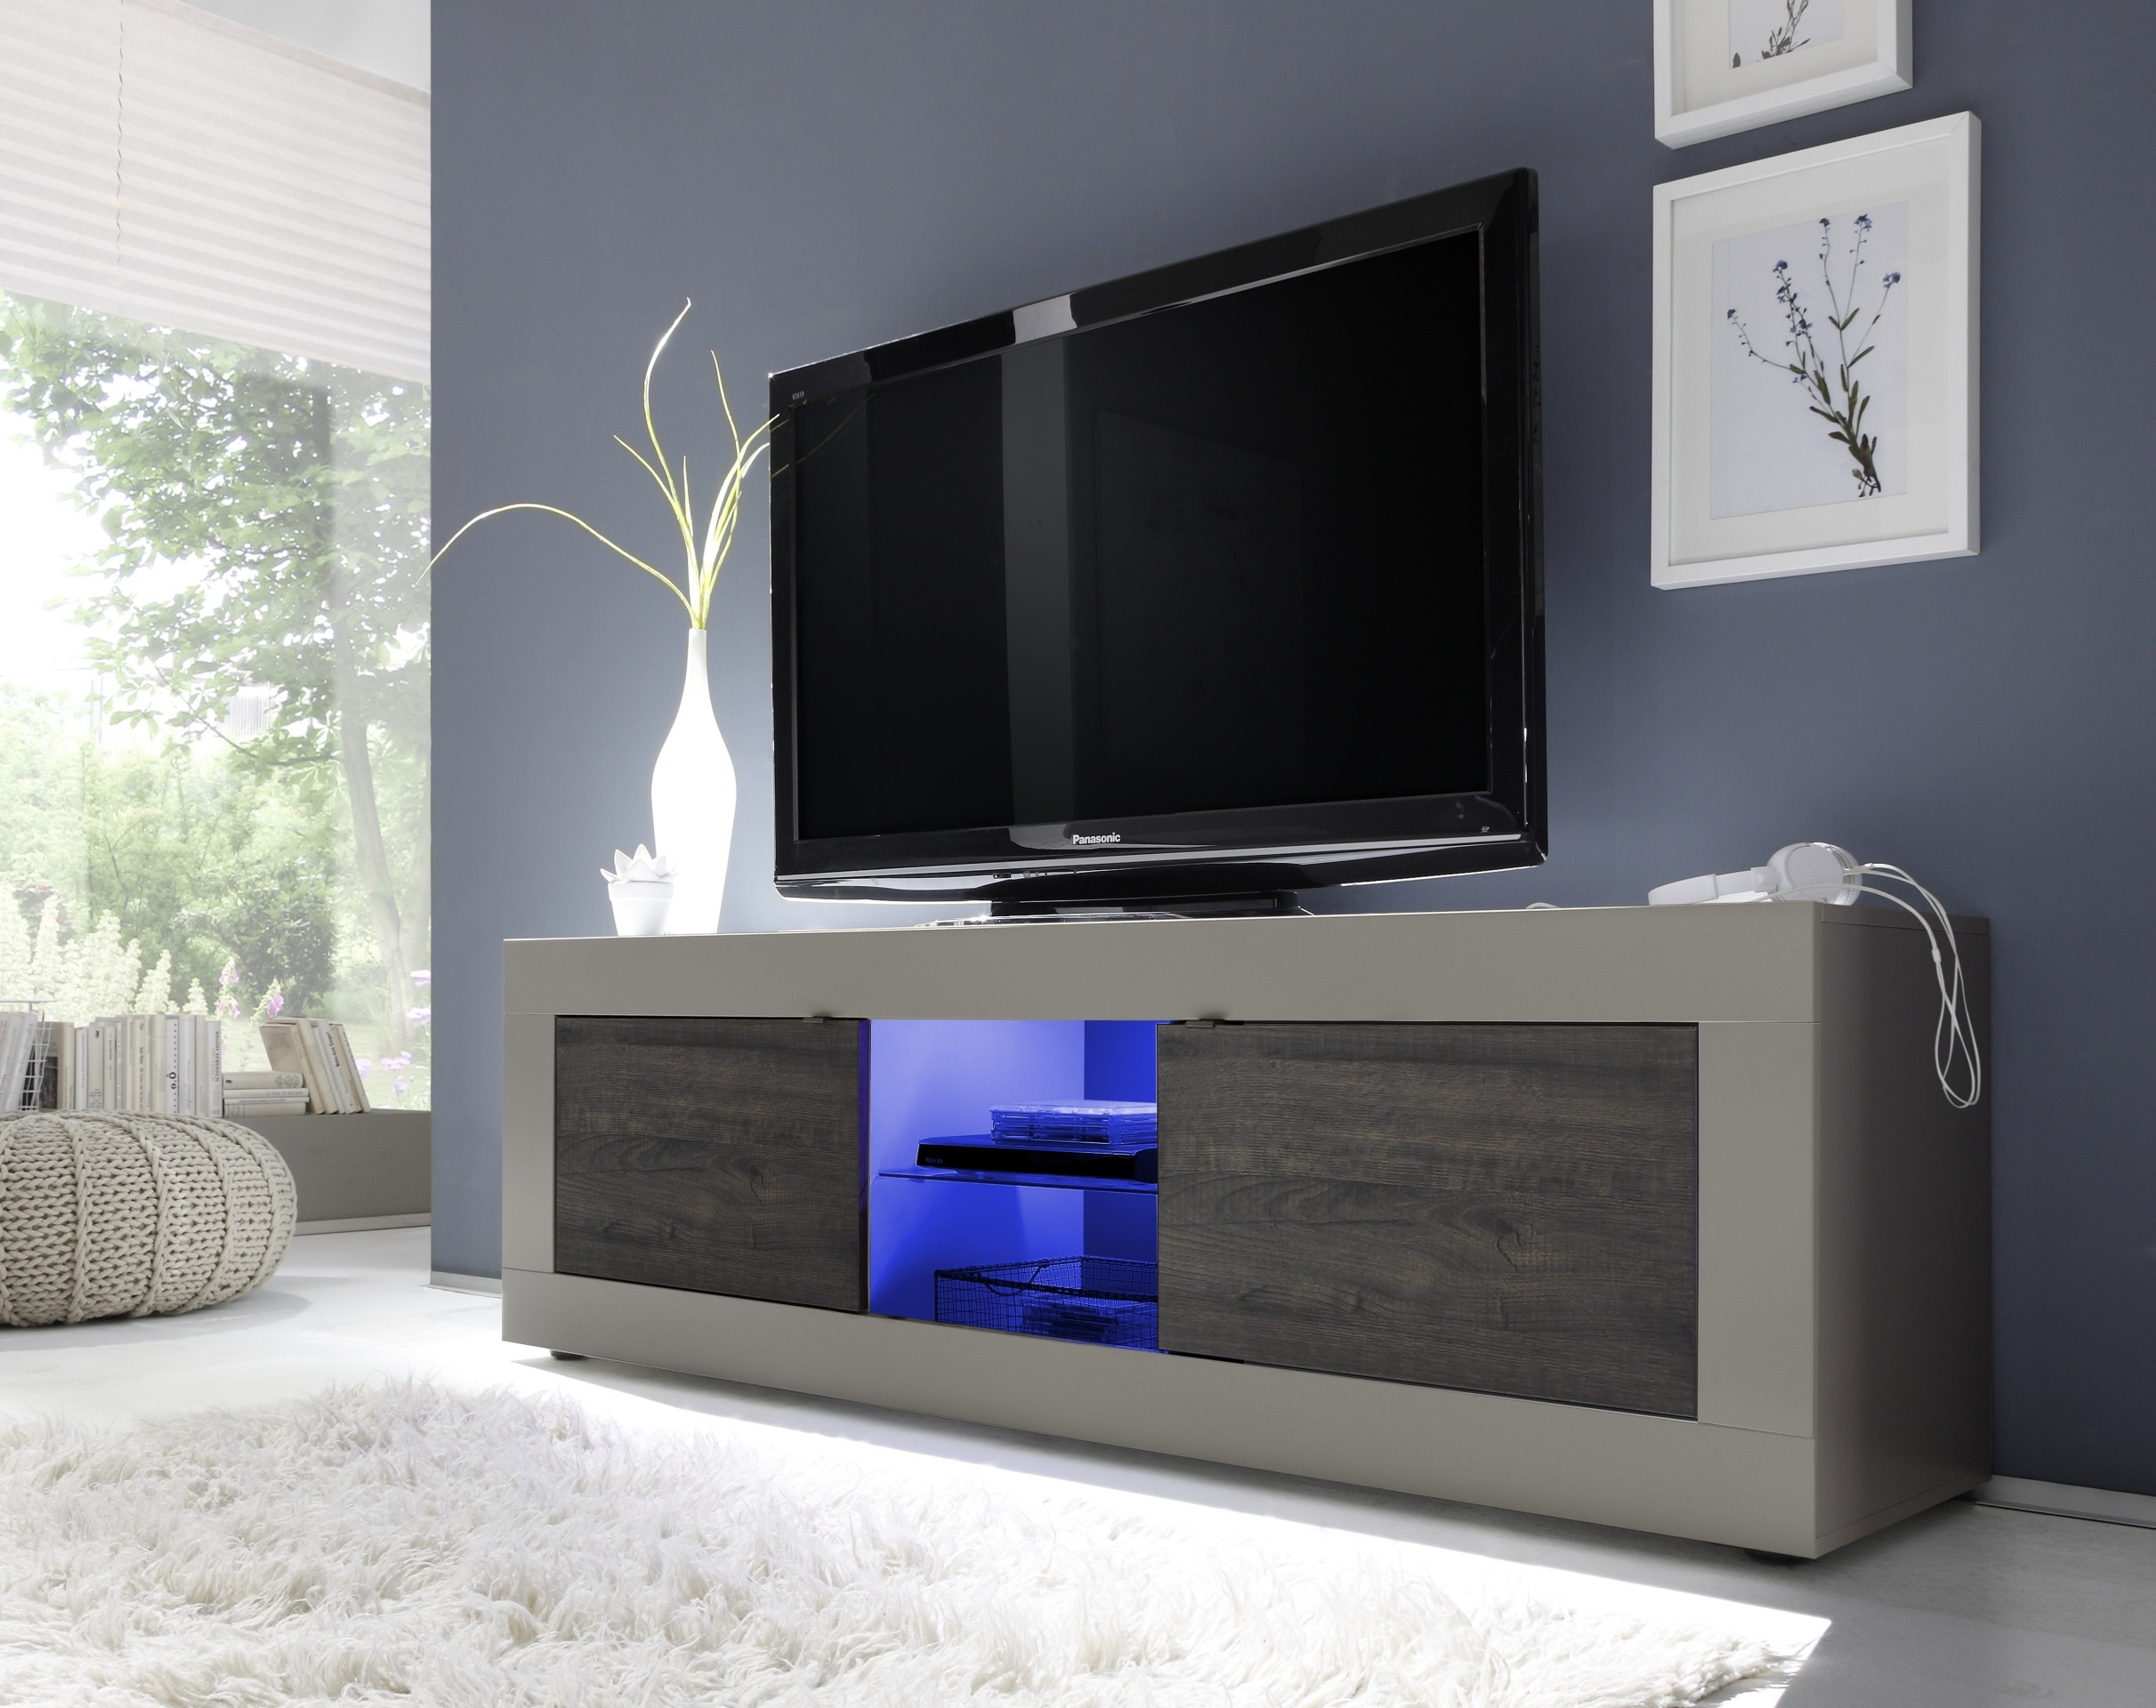 Meuble Tv Modern - Dolcevita Ii Modern Tv Stand In Matt Finish Tv Stands Sena [mjhdah]https://s-media-cache-ak0.pinimg.com/originals/c2/e1/eb/c2e1ebb3751d823c8662529465f9a7b1.jpg